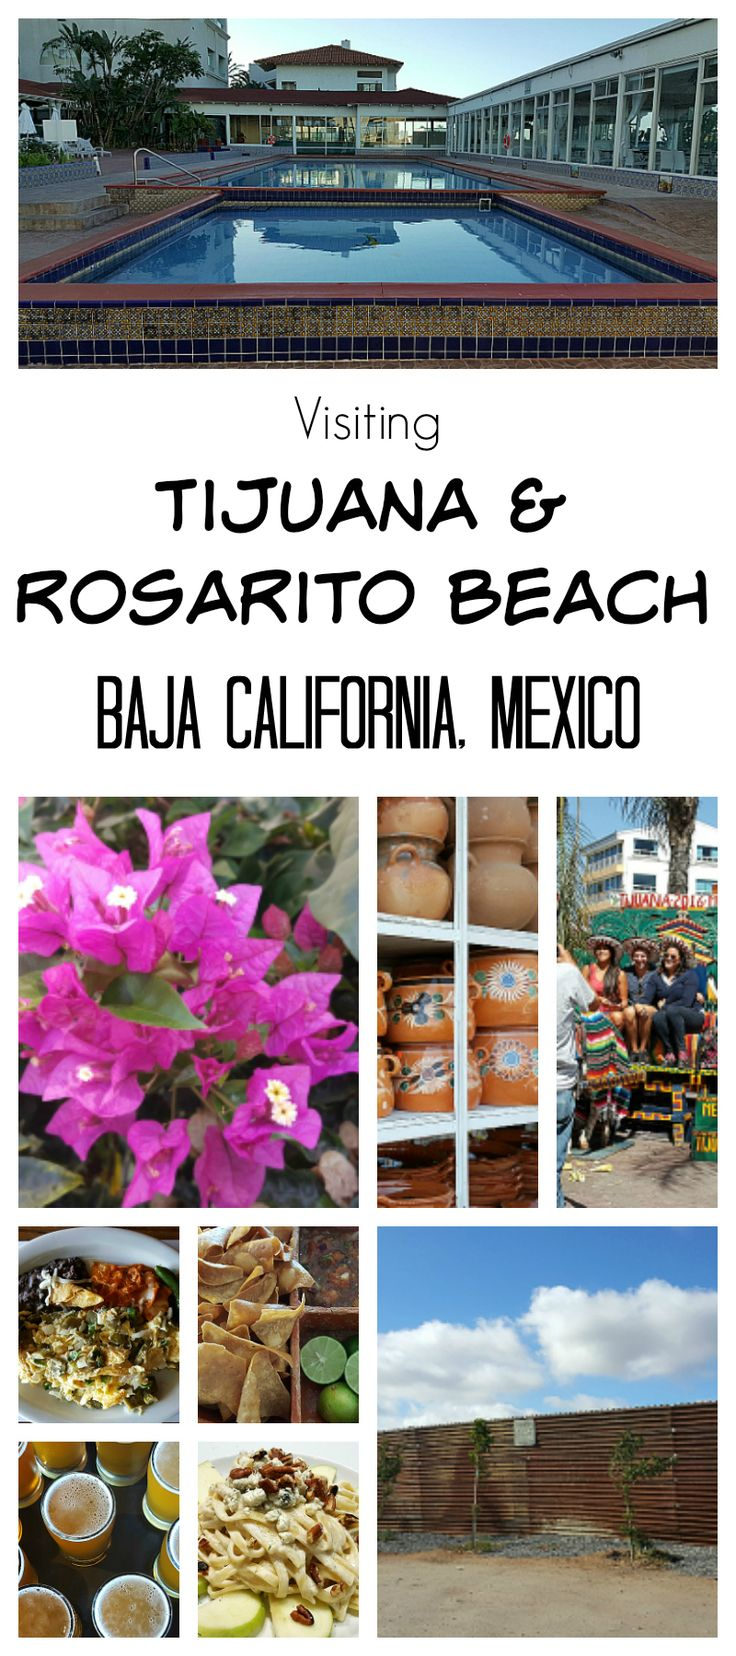 Visiting Tijuana and Rosarito Beach